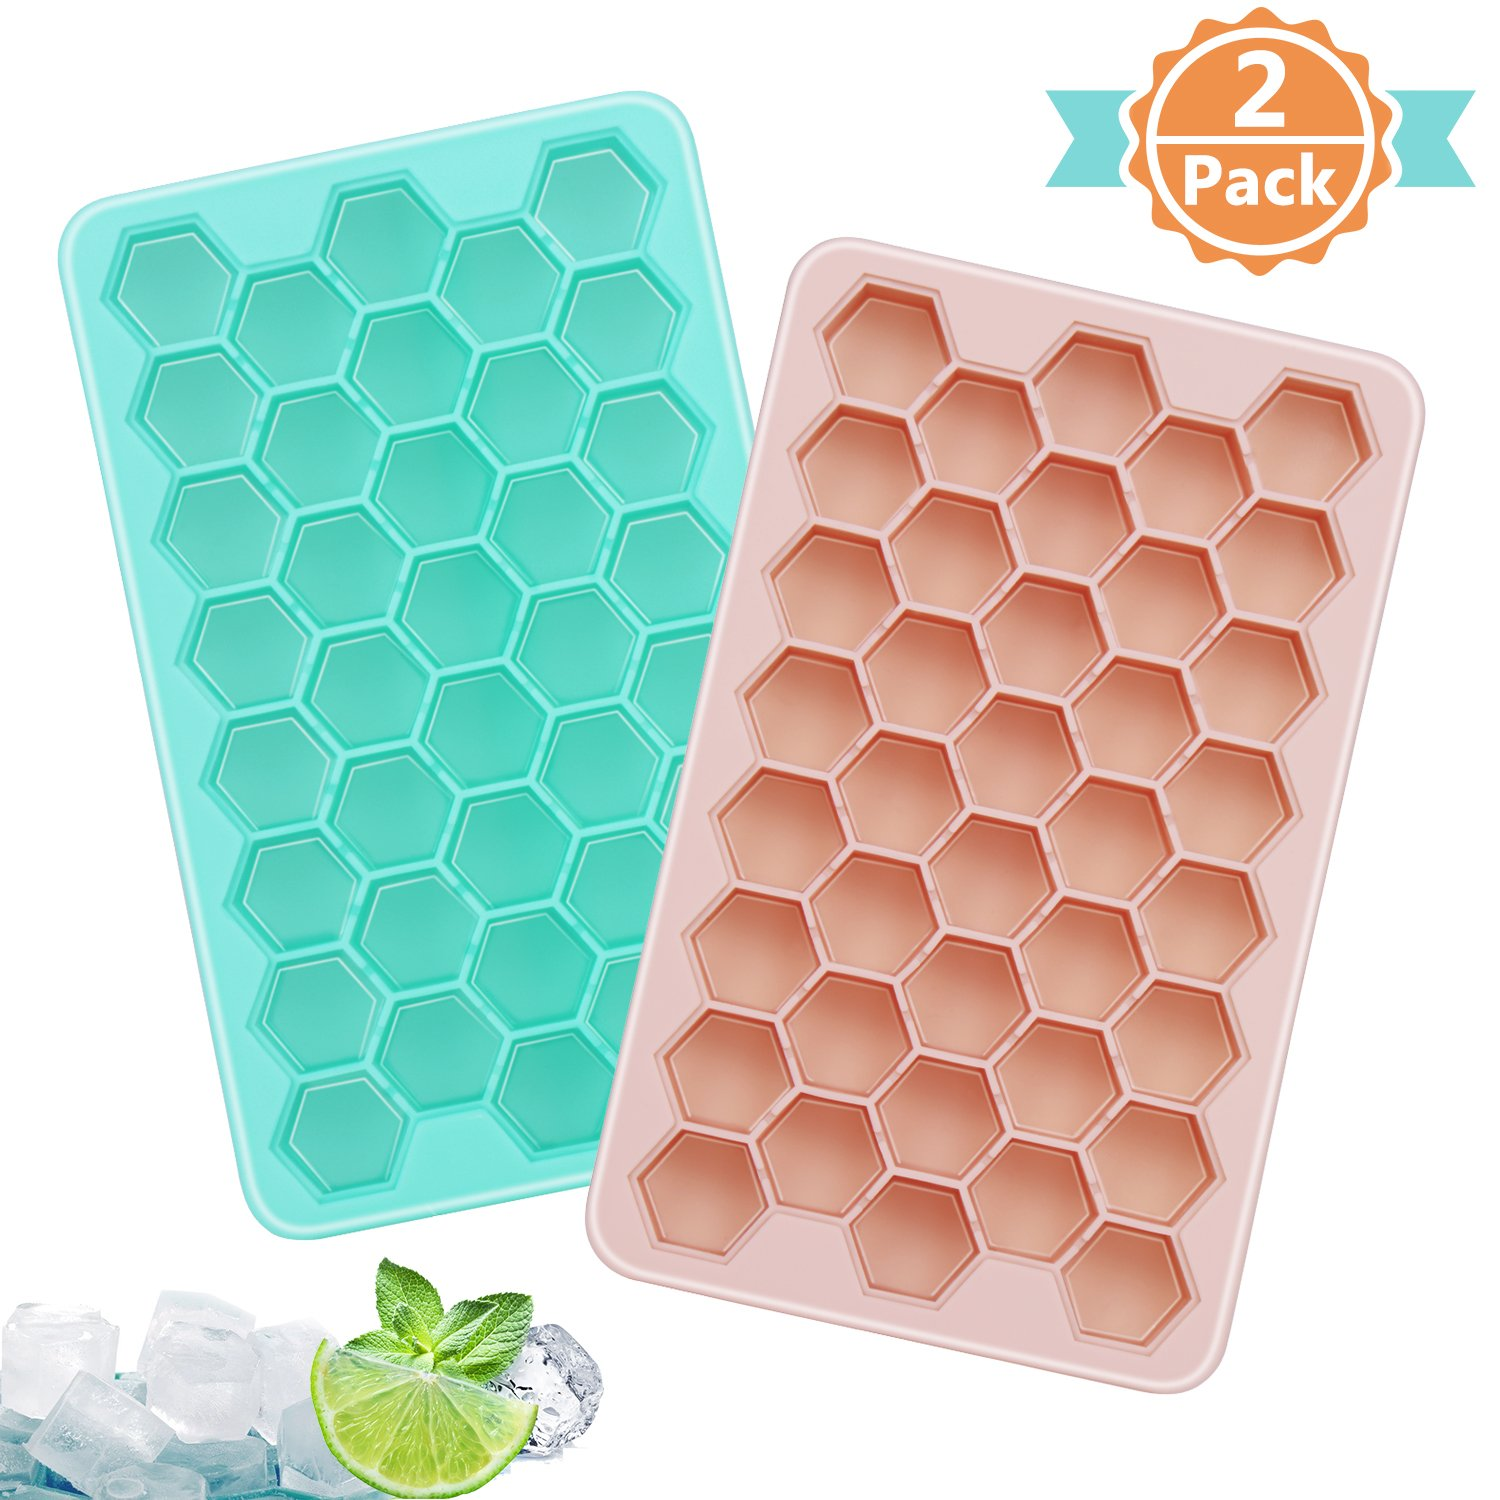 Adoric Ice Cube Trays 2 Pack, Easy-Release Silicone Honeycomb Shape Ice Tray, Ice Cube Mold for Chilling Bourbon Whiskey, Cocktail, Beverages, 38 Cubes Each BPA Free, FDA/LFGB Approval